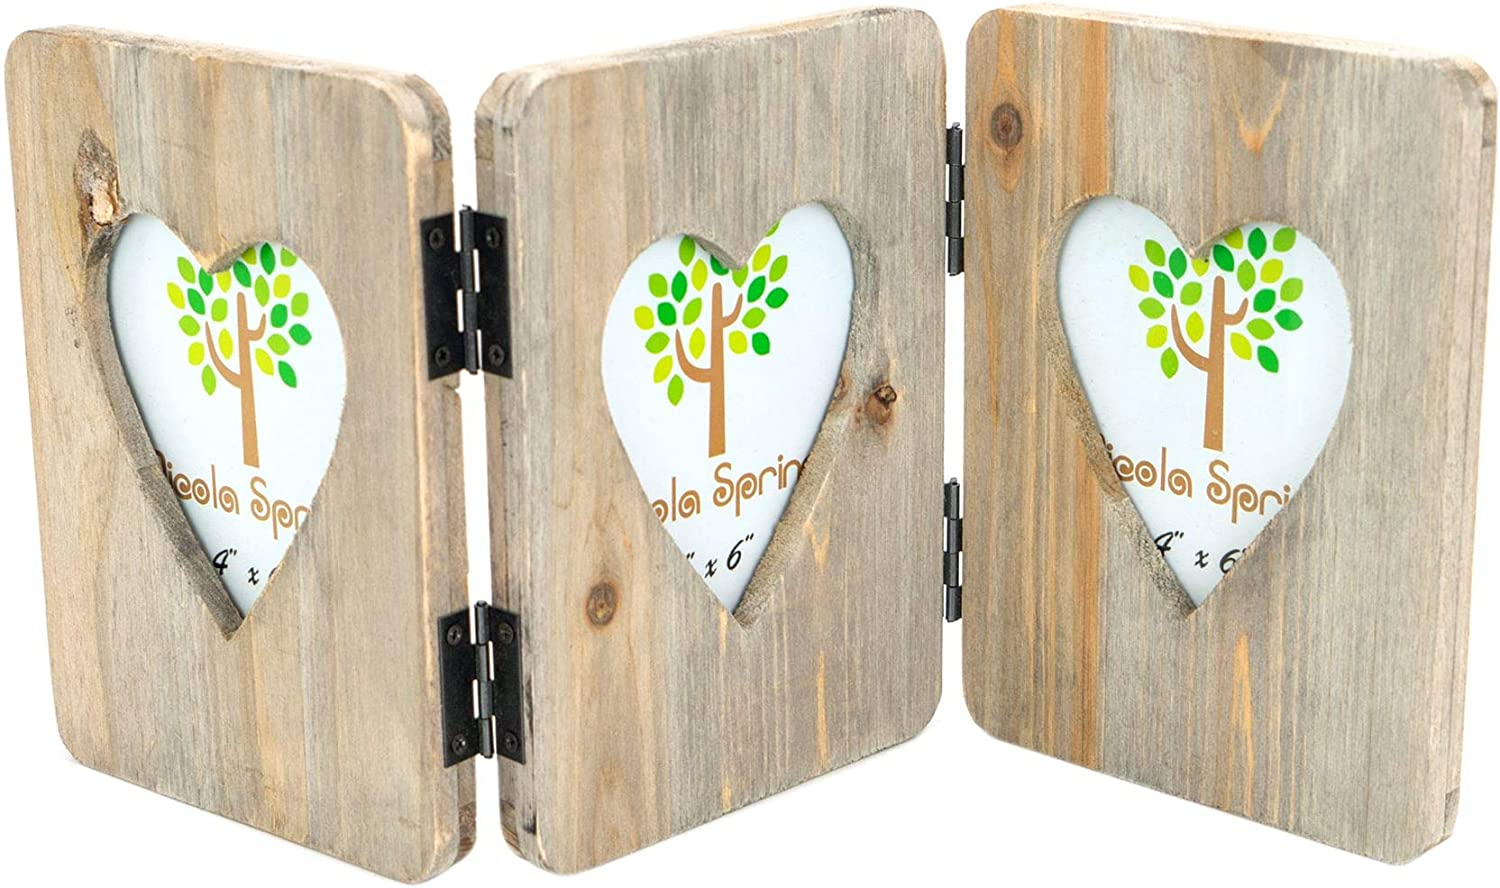 Nicola Spring Wooden 3 Photo Triple Hanging Heart Shaped Freestanding Multi Picture Photo Frame - 4 x 6